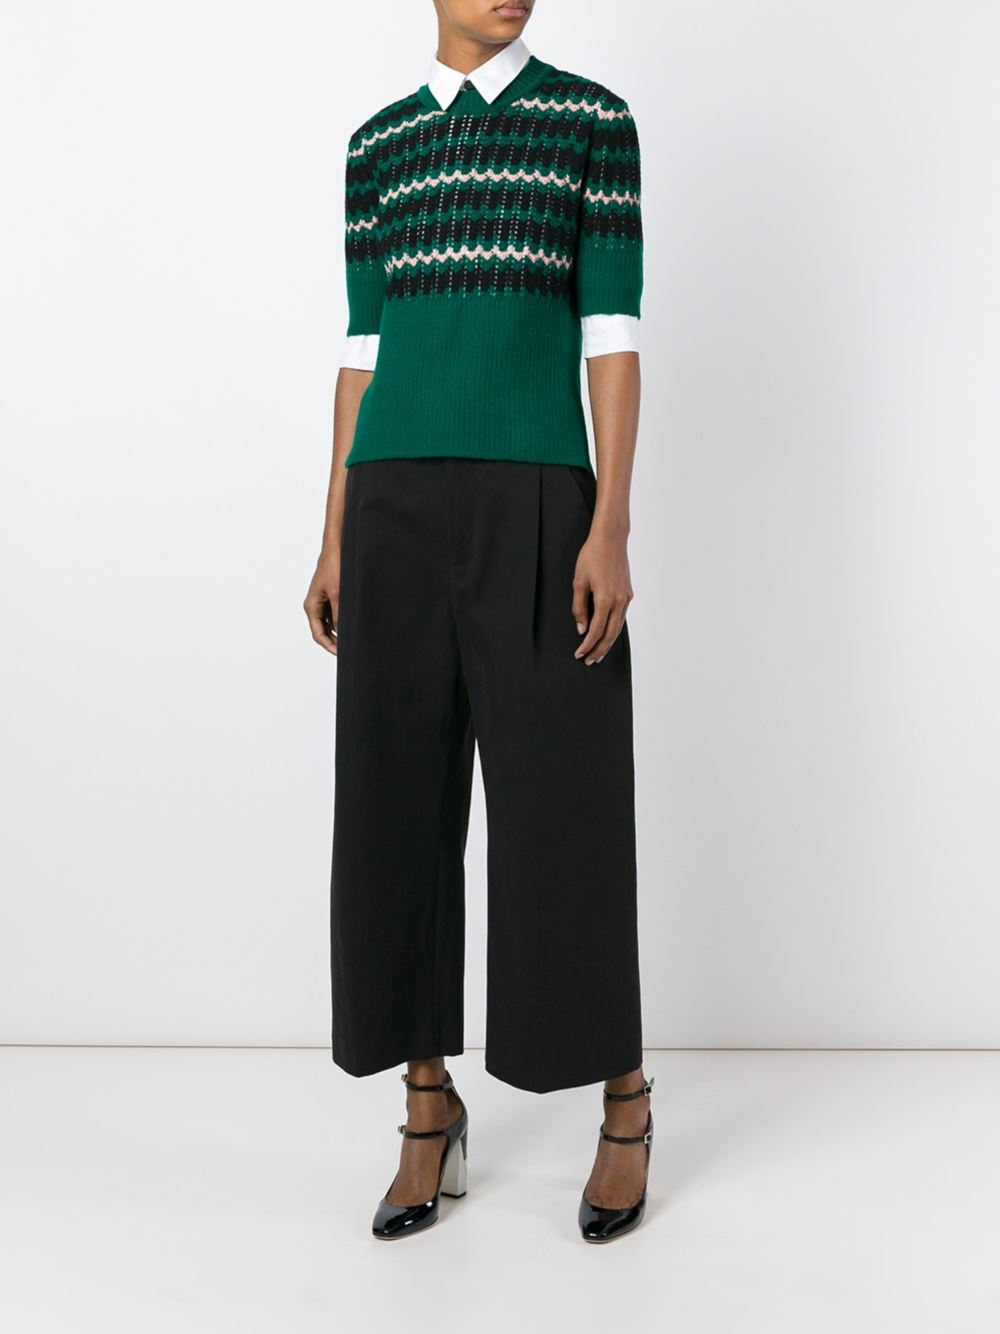 Find cropped palazzo pants at ShopStyle. Shop the latest collection of cropped palazzo pants from the most popular stores - all in one place.